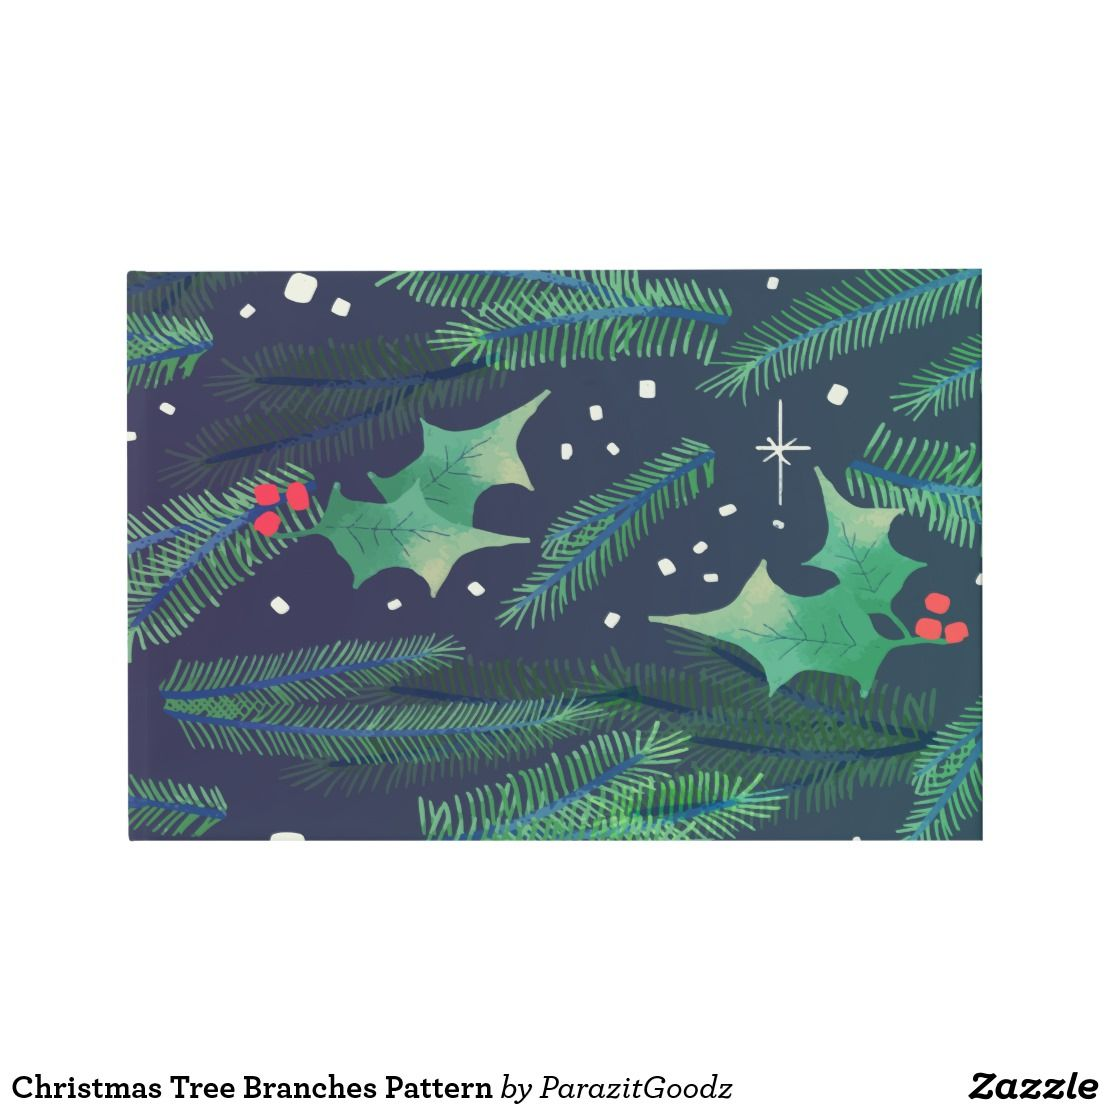 Welcome to unique Christmas with this tree branches mistletoe pattern design for special party gift or accessory